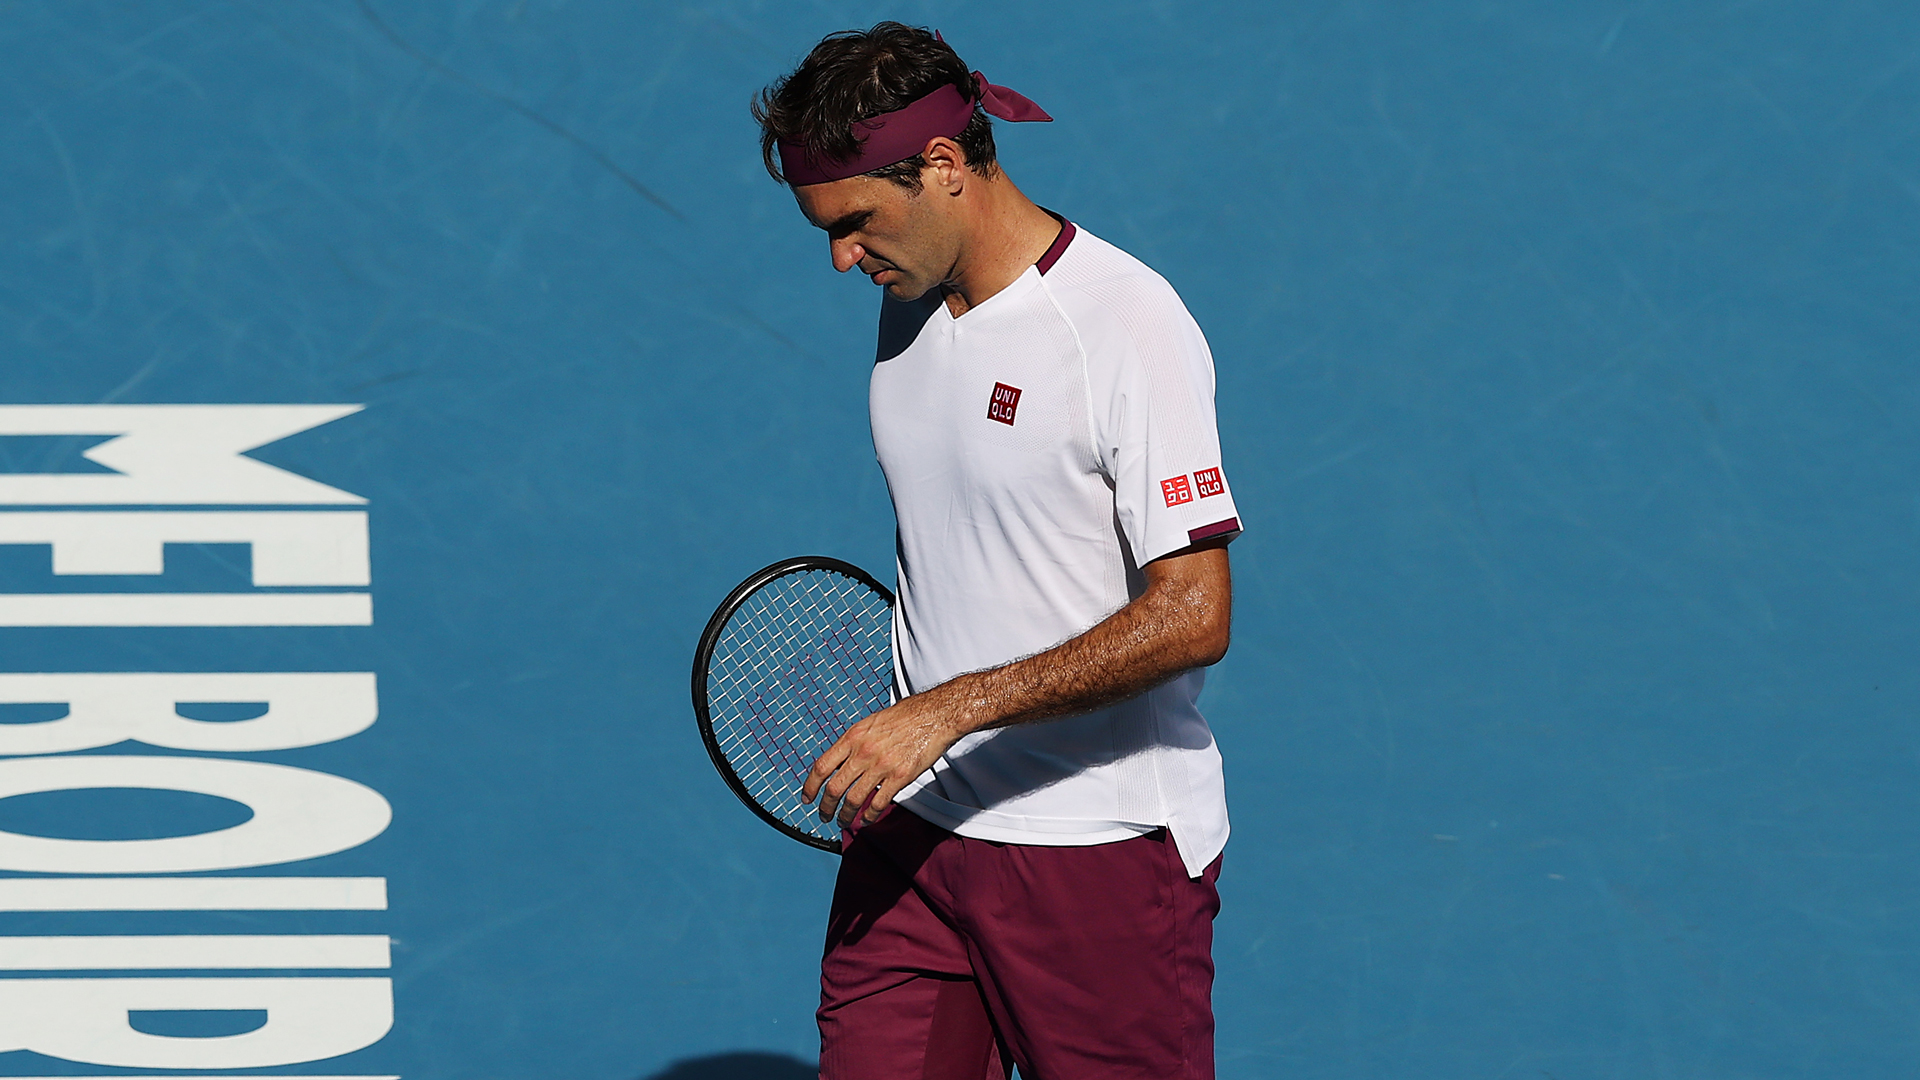 Australian Open 2020: It's just pain and problems – Federer hopeful over injury